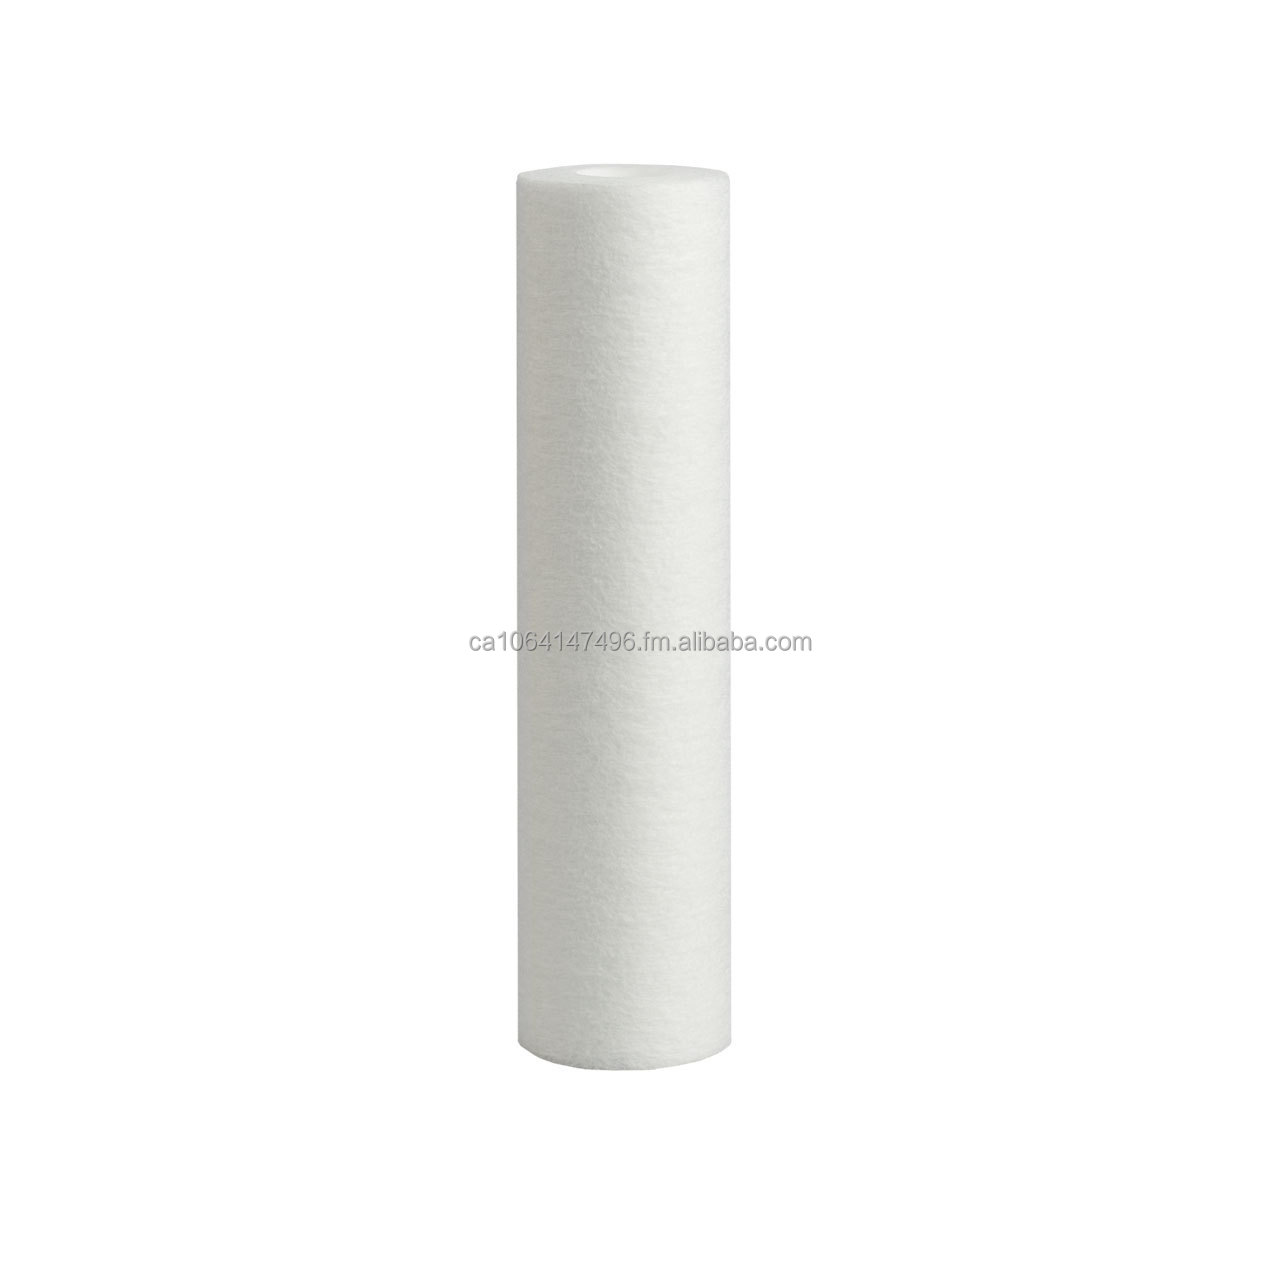 5 Micron Sediment Filter Reverse Osmosis 10 inch Filter